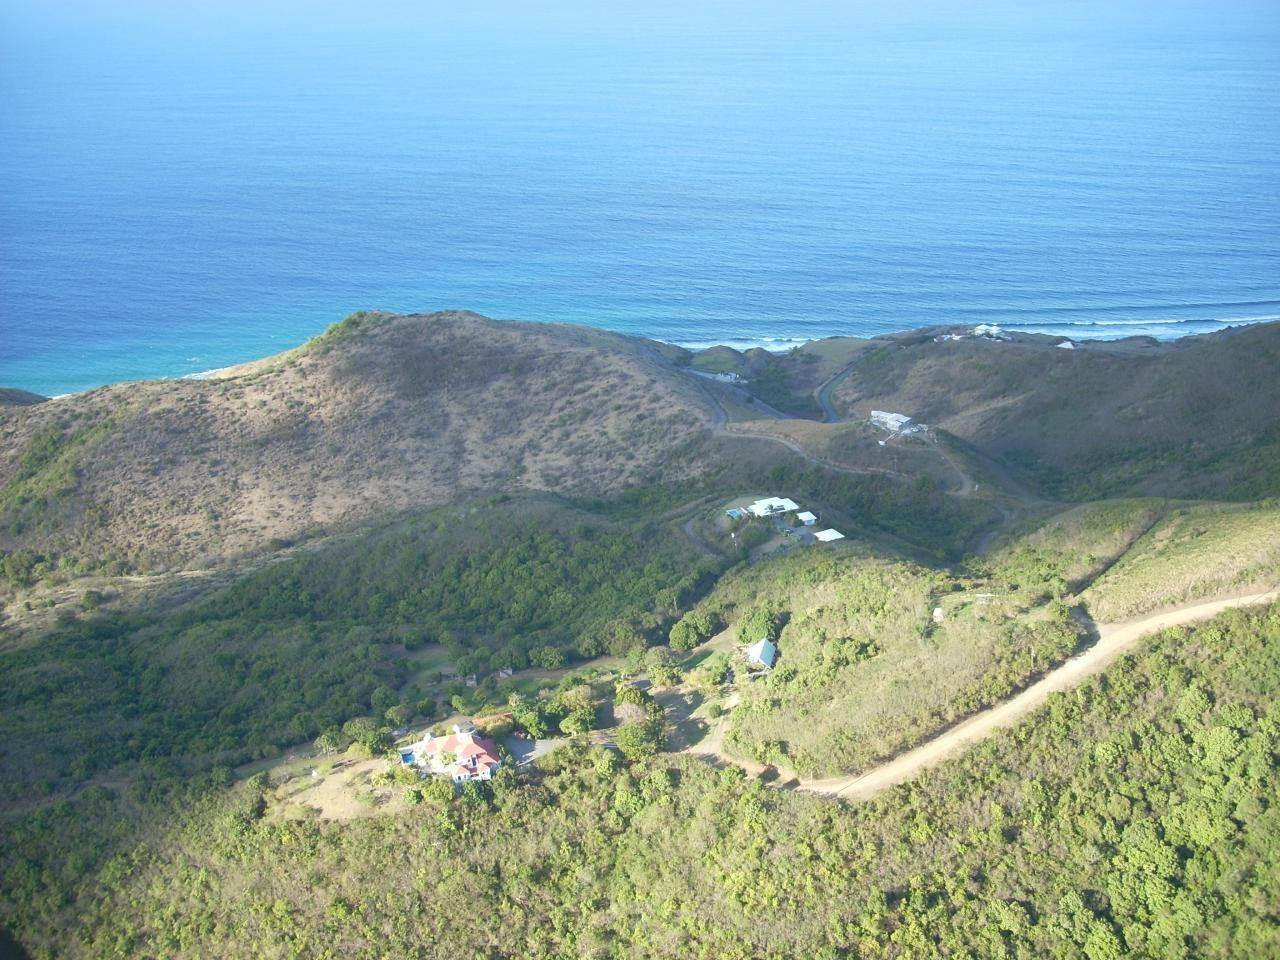 Land for Sale at 72 et al Clairmont NB St Croix, Virgin Islands 00820 United States Virgin Islands